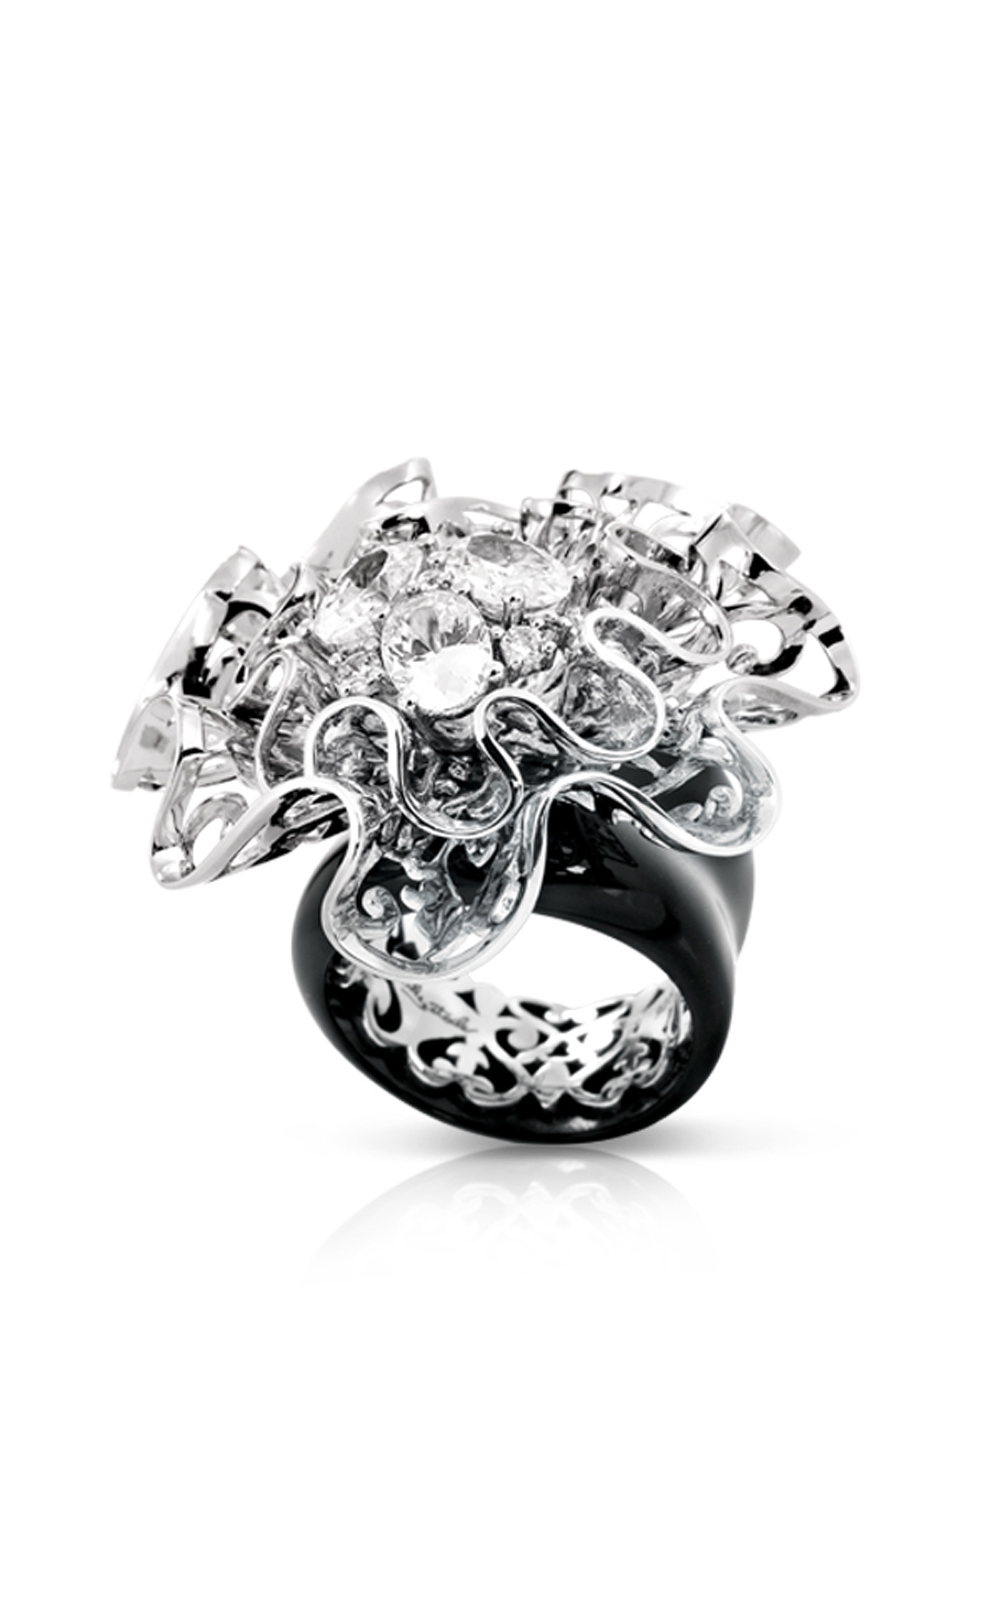 Belle Etoile Corsage Black Ring 01061010301-5 product image